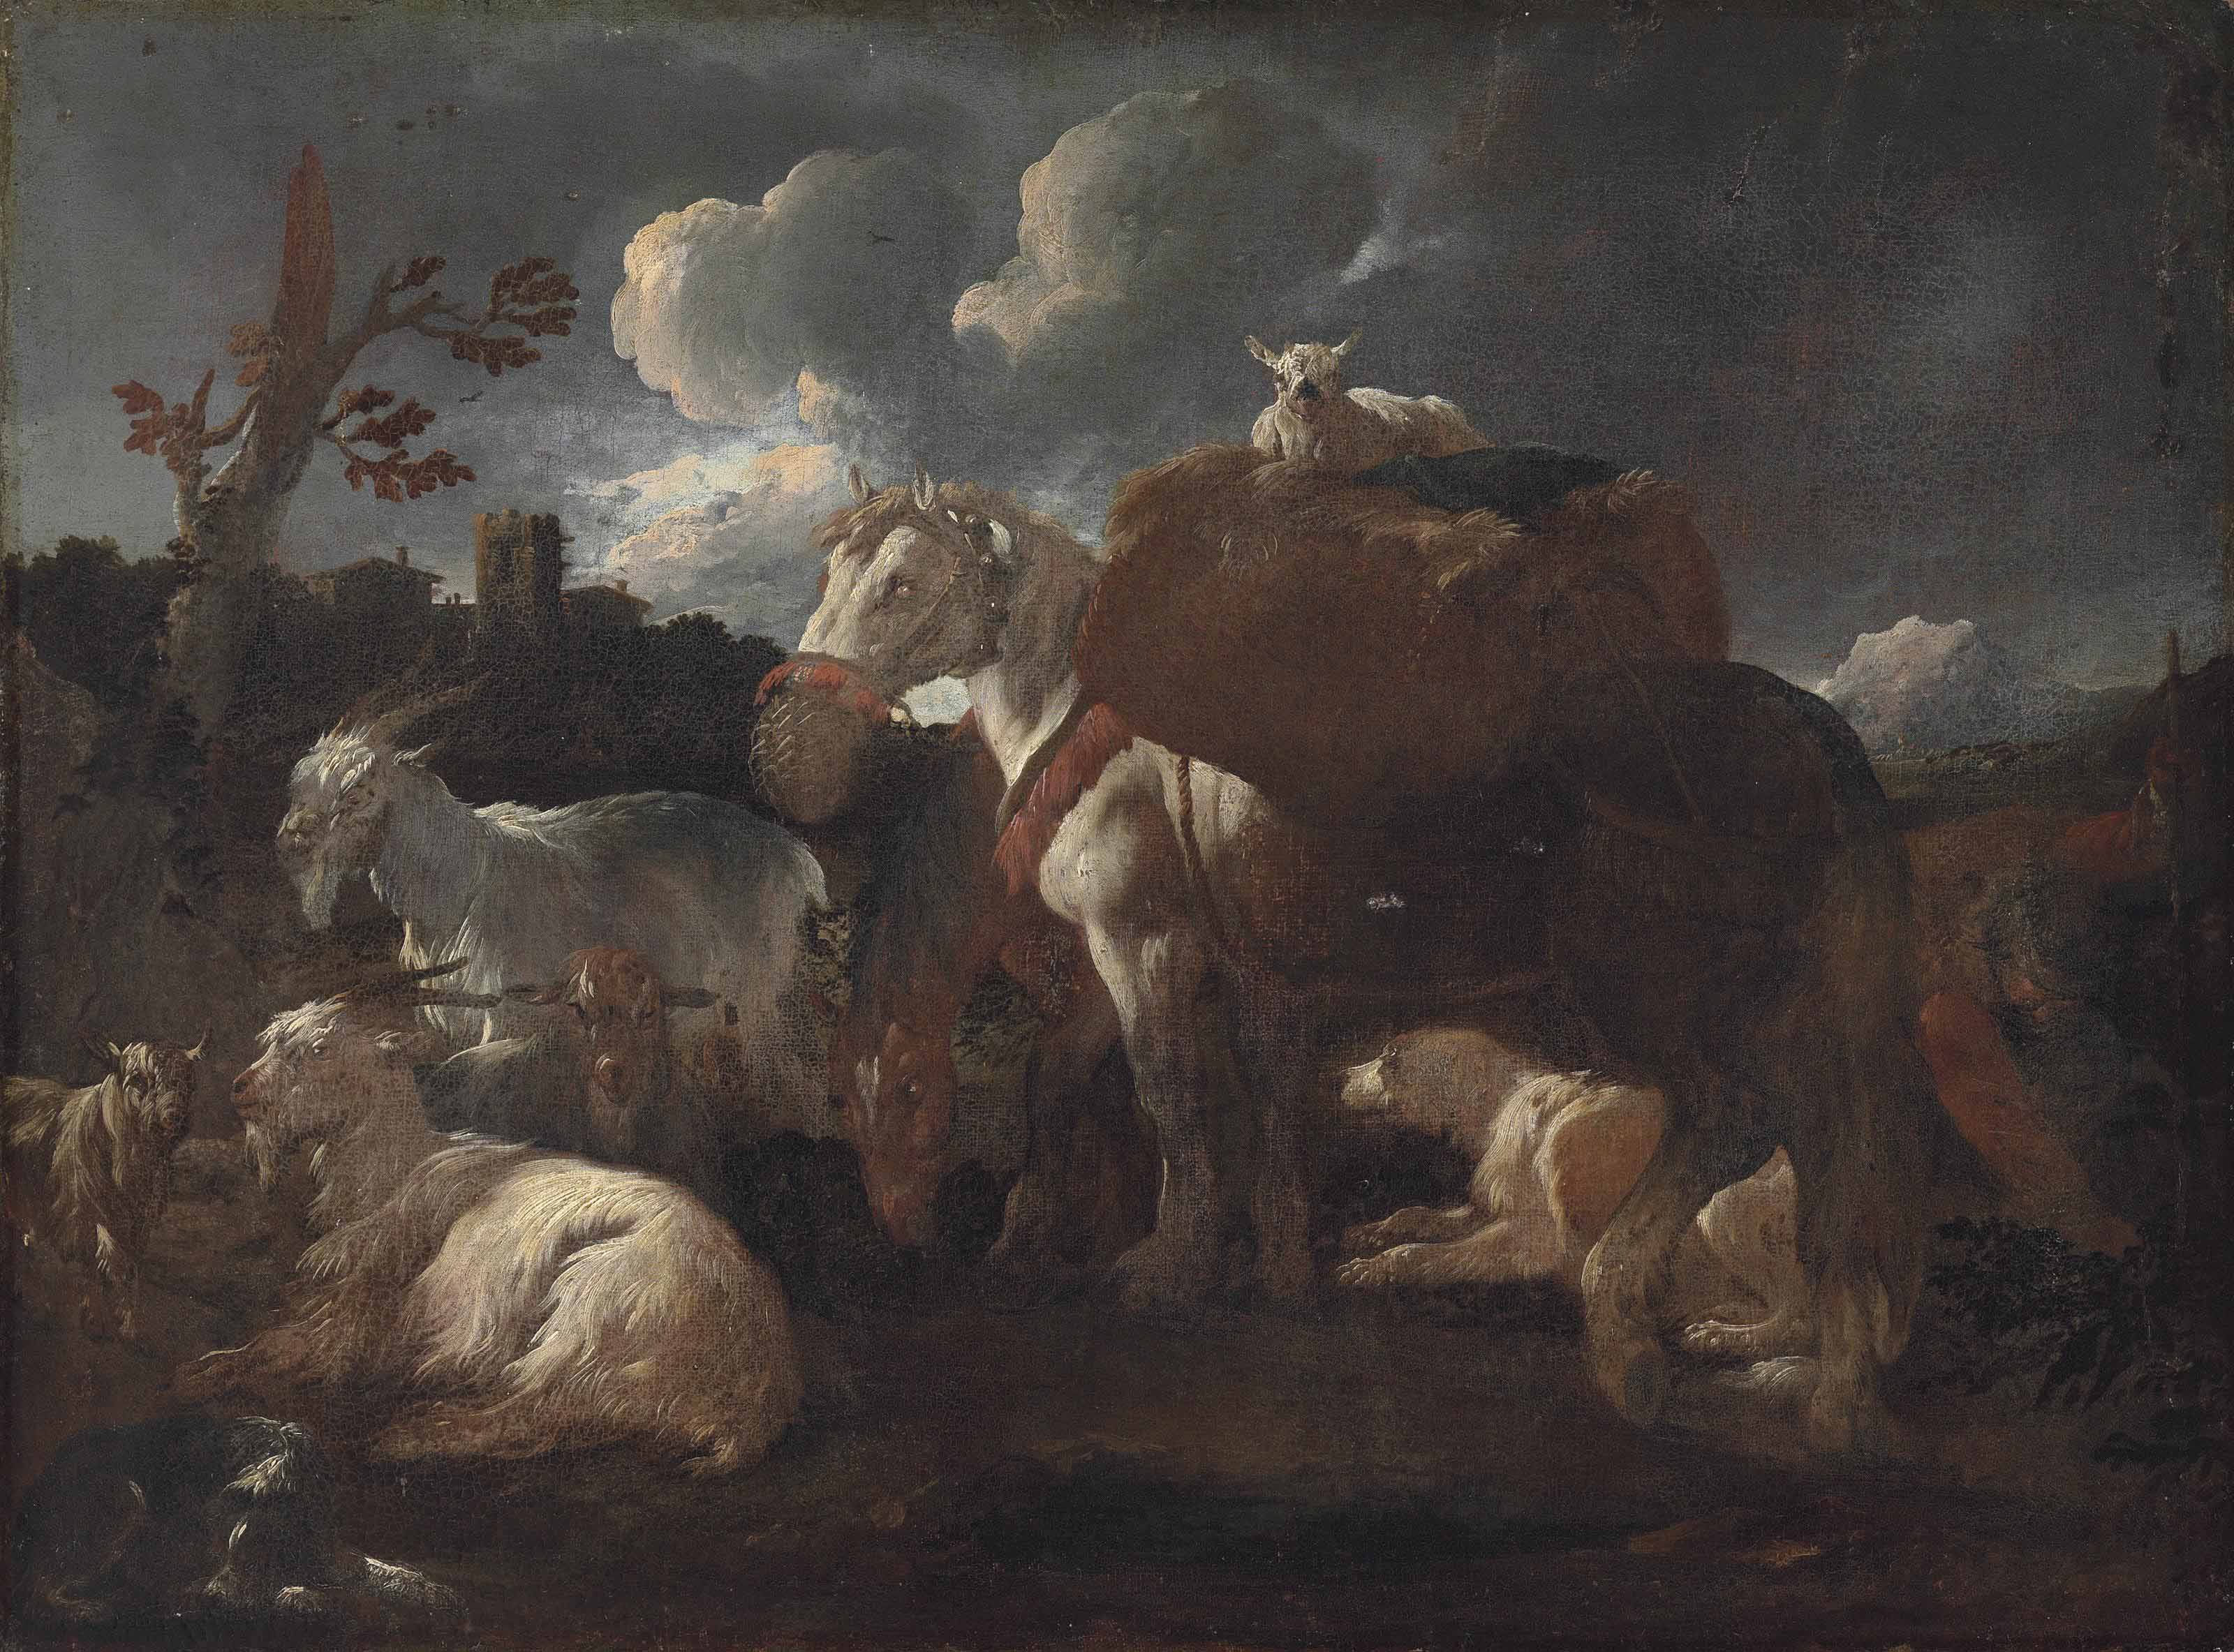 A goatherd with his flock and horse in a landscape